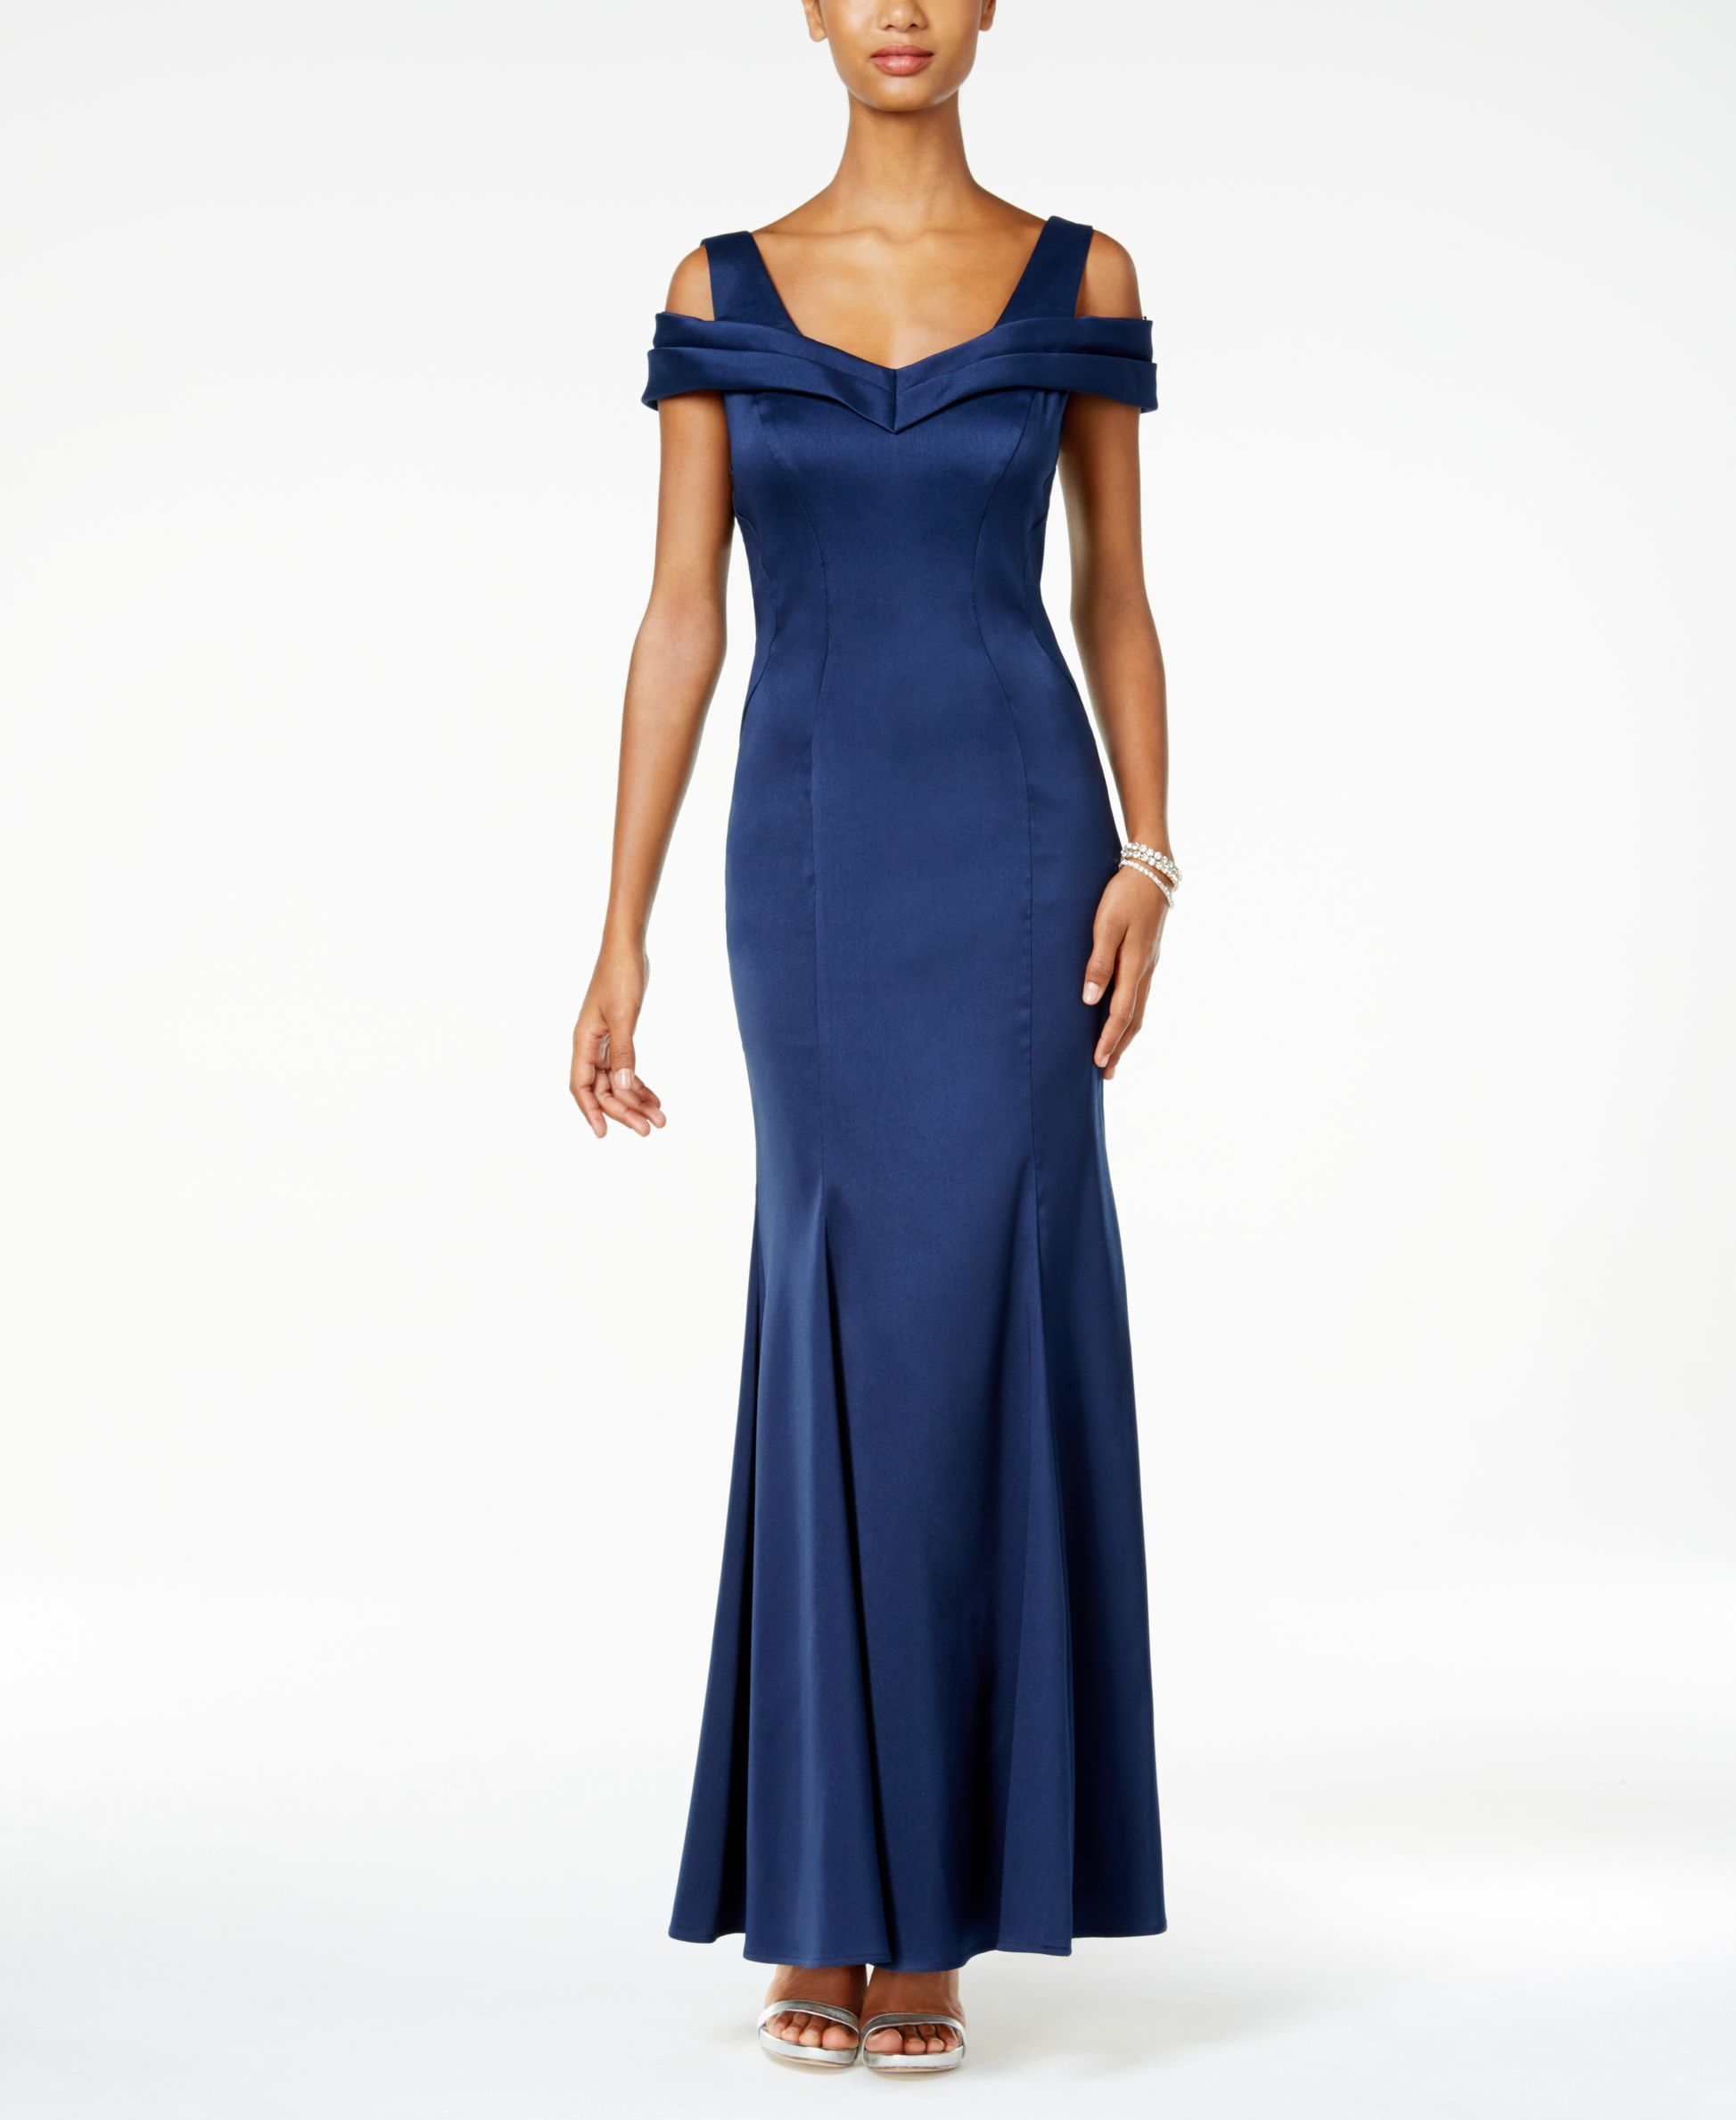 Nightway offtheshoulder gown products pinterest gowns